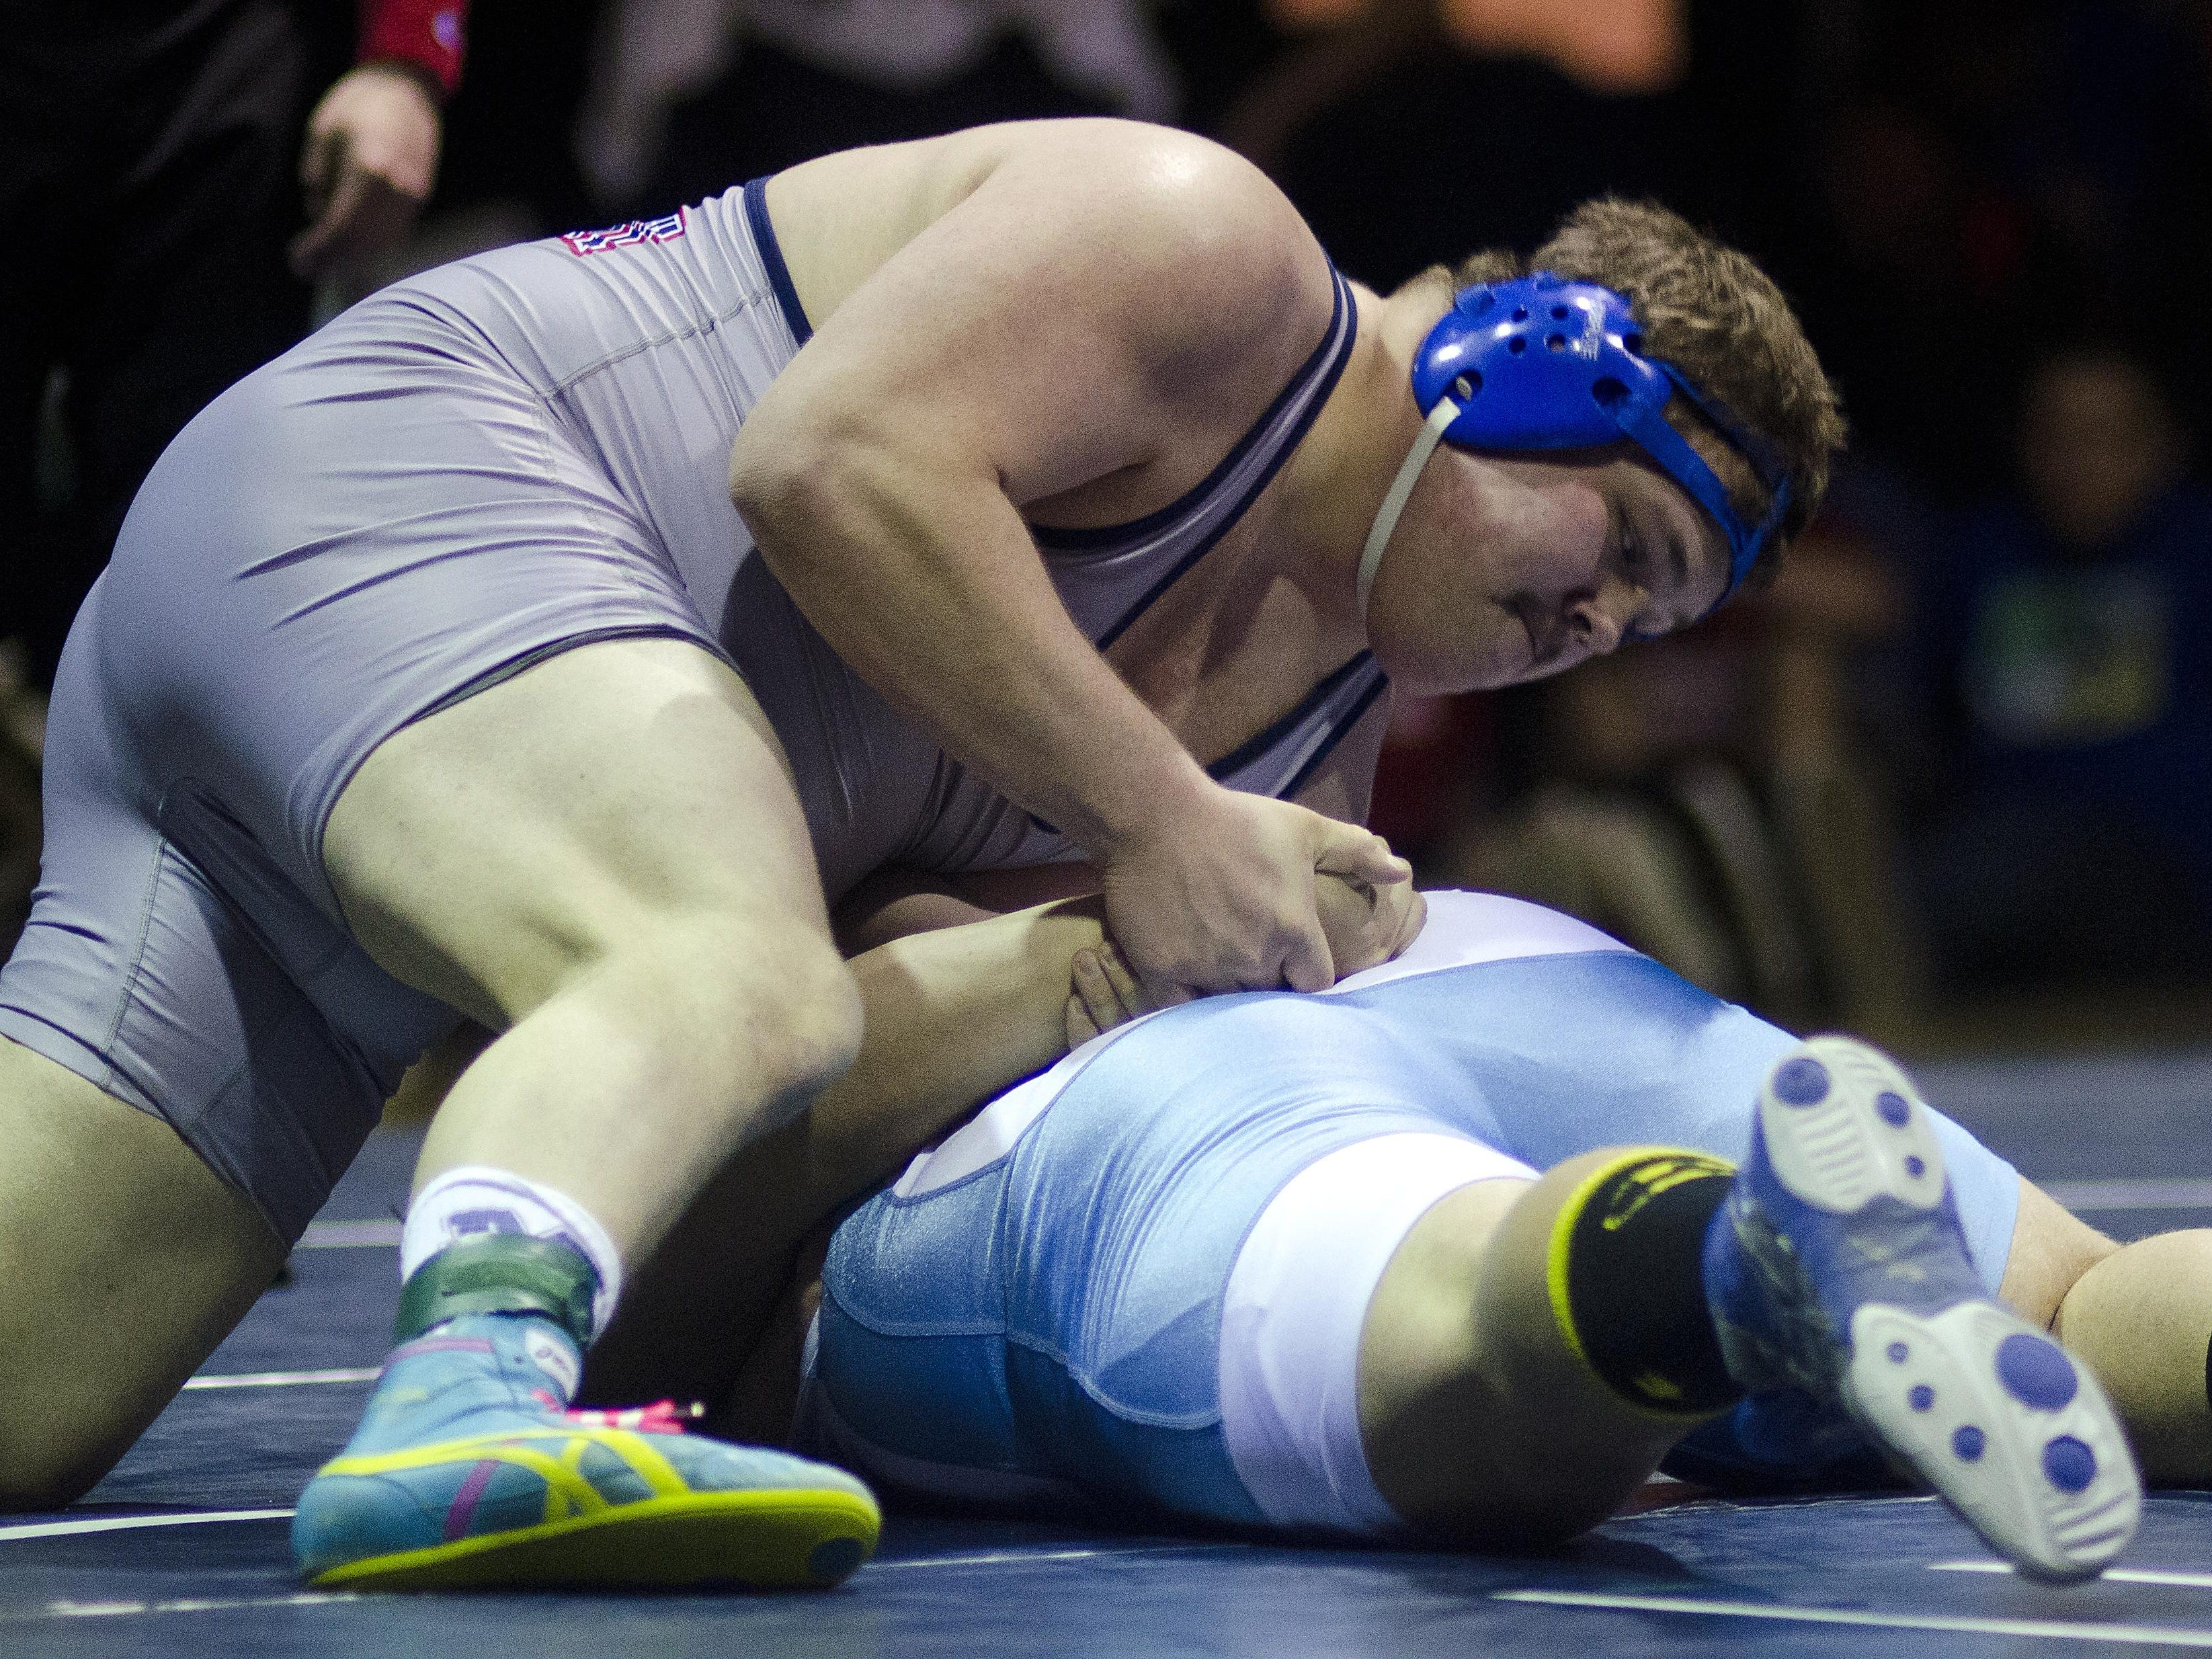 Mount Anthony's Jesse Webb (top) controls the action against Mount Mansfield's Dalton Hallock in the 285-pound state championship match Saturday night in Bennington. Webb, the state's all-time winningest wrestler, won with a first-period pin to claim his fourth state crown. AUSTIN DANFORTH/FREE PRESS